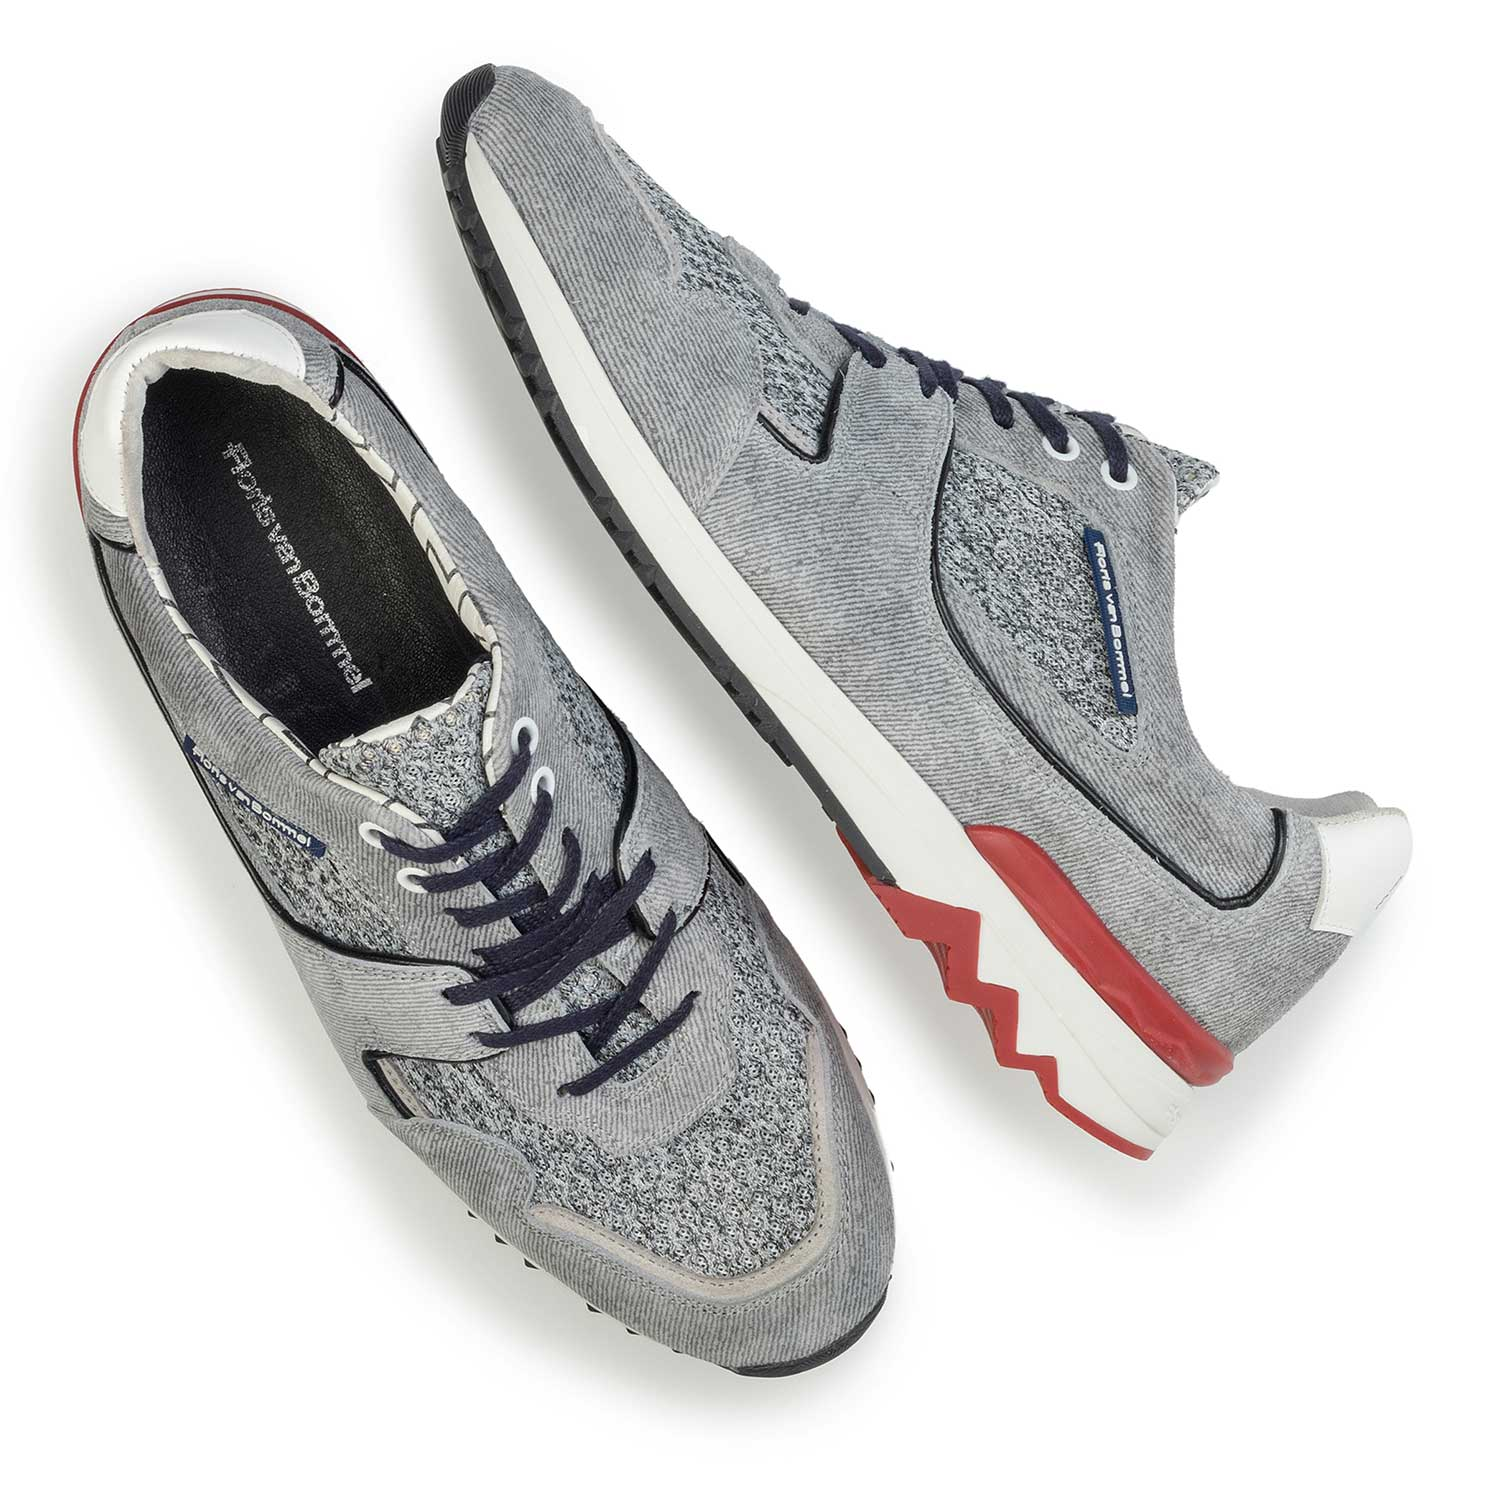 16220/06 - Light grey, printed suede leather sneaker